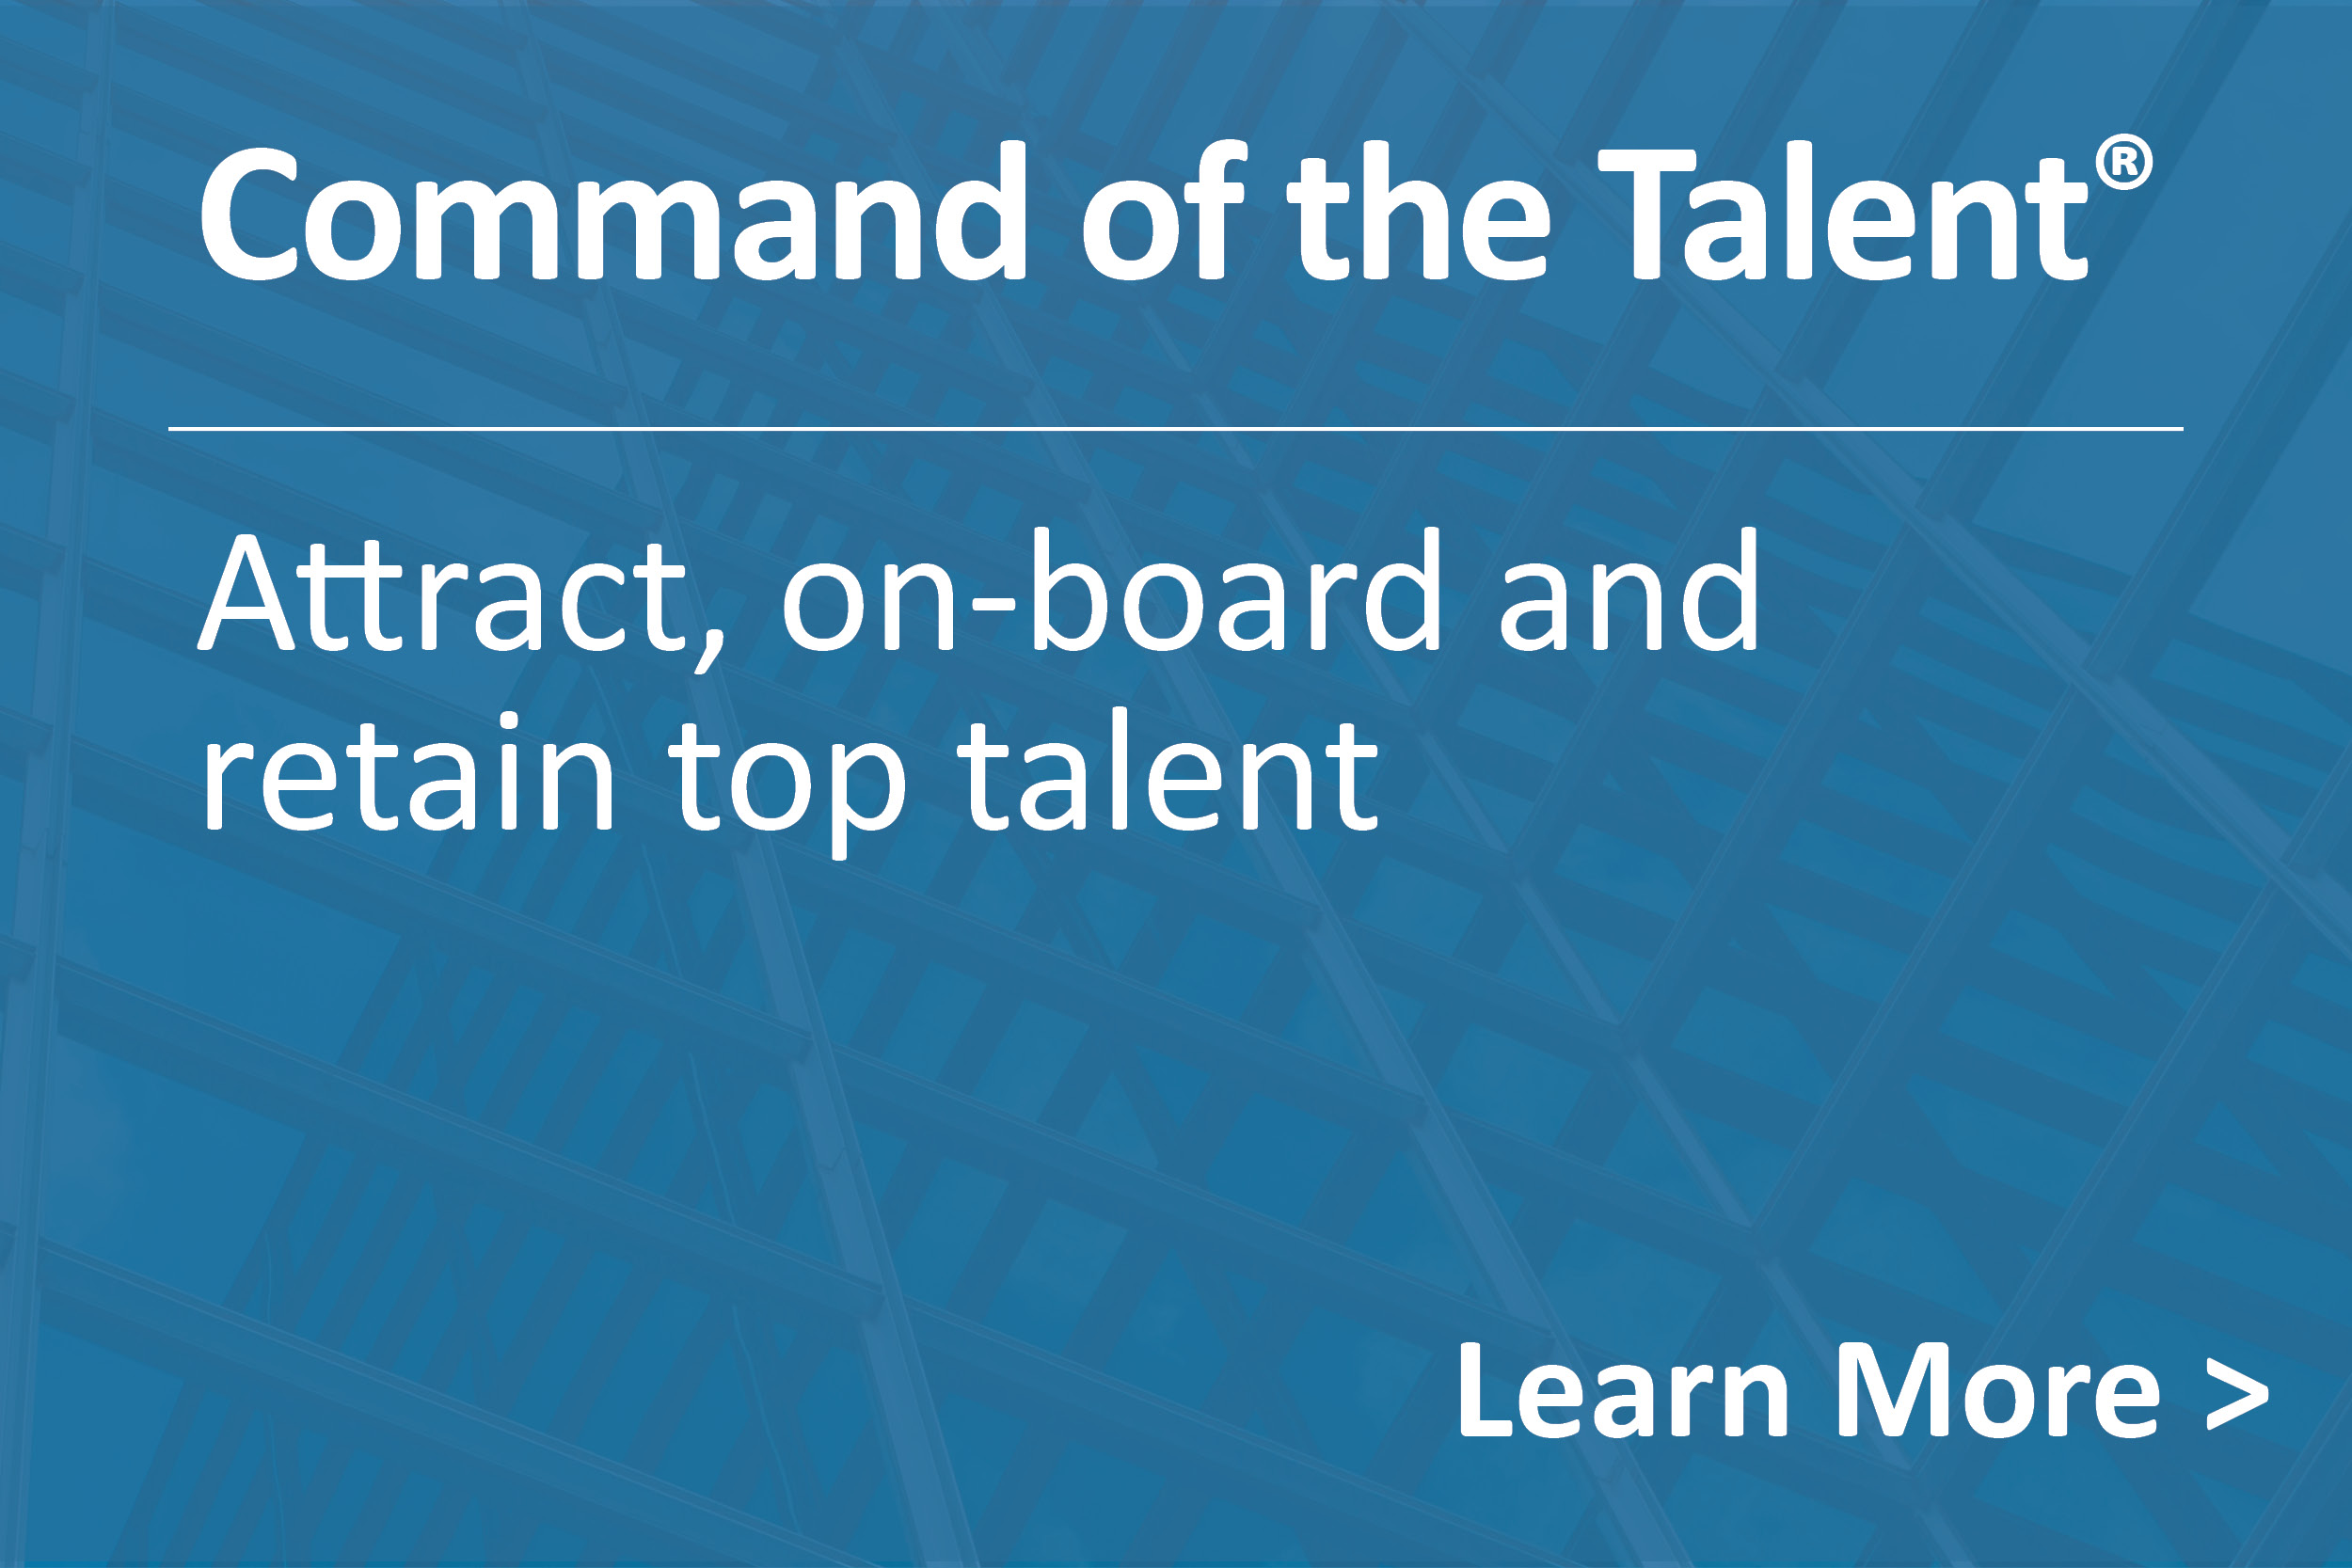 Command of the Talent